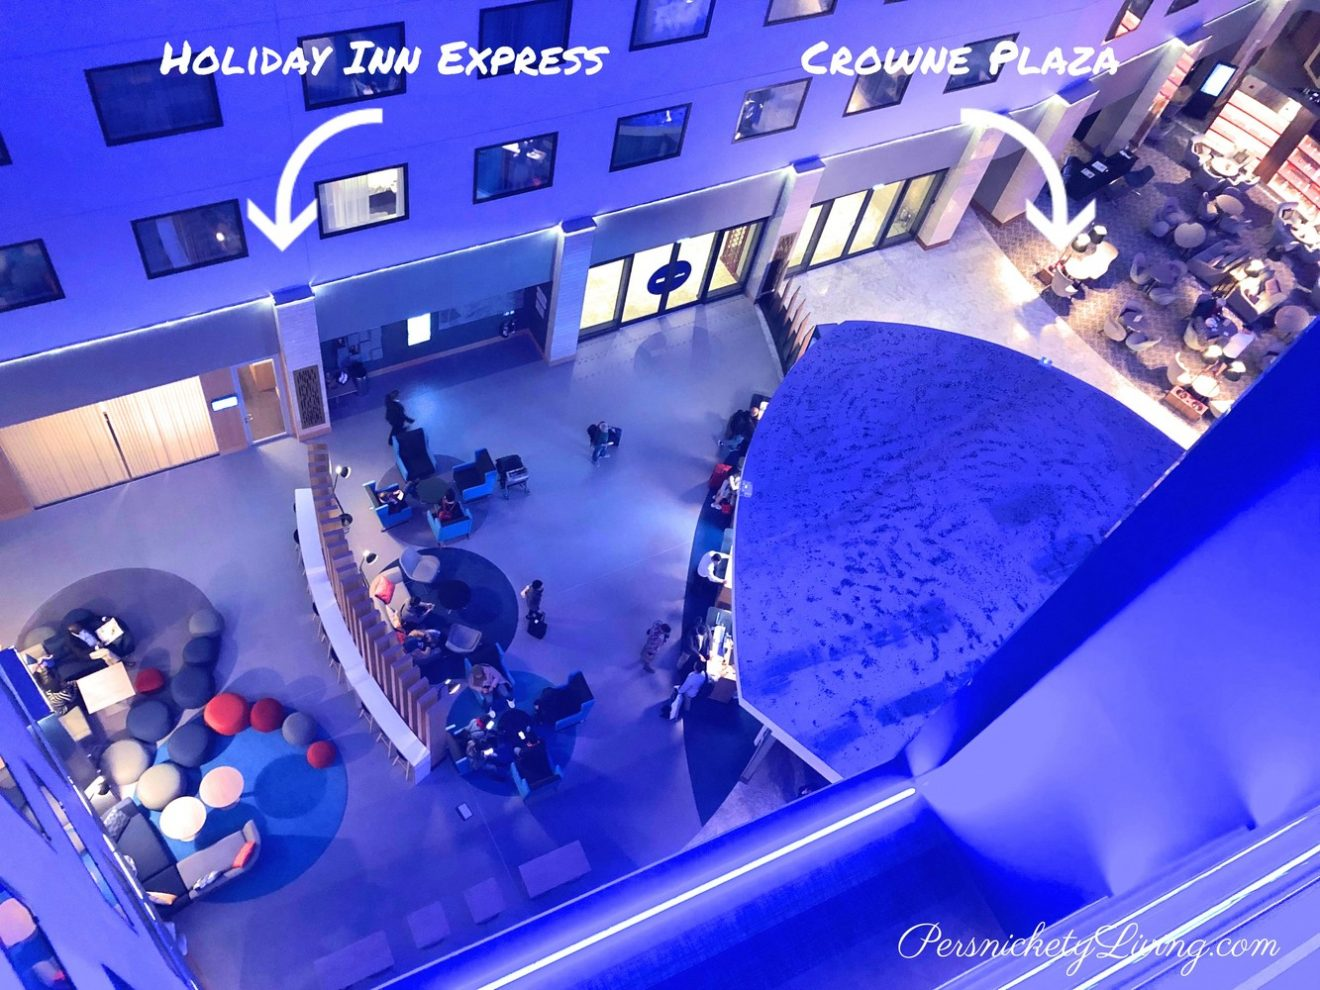 Holiday Inn Express Crowne Plaza Heathrow Hotel Terminal 4